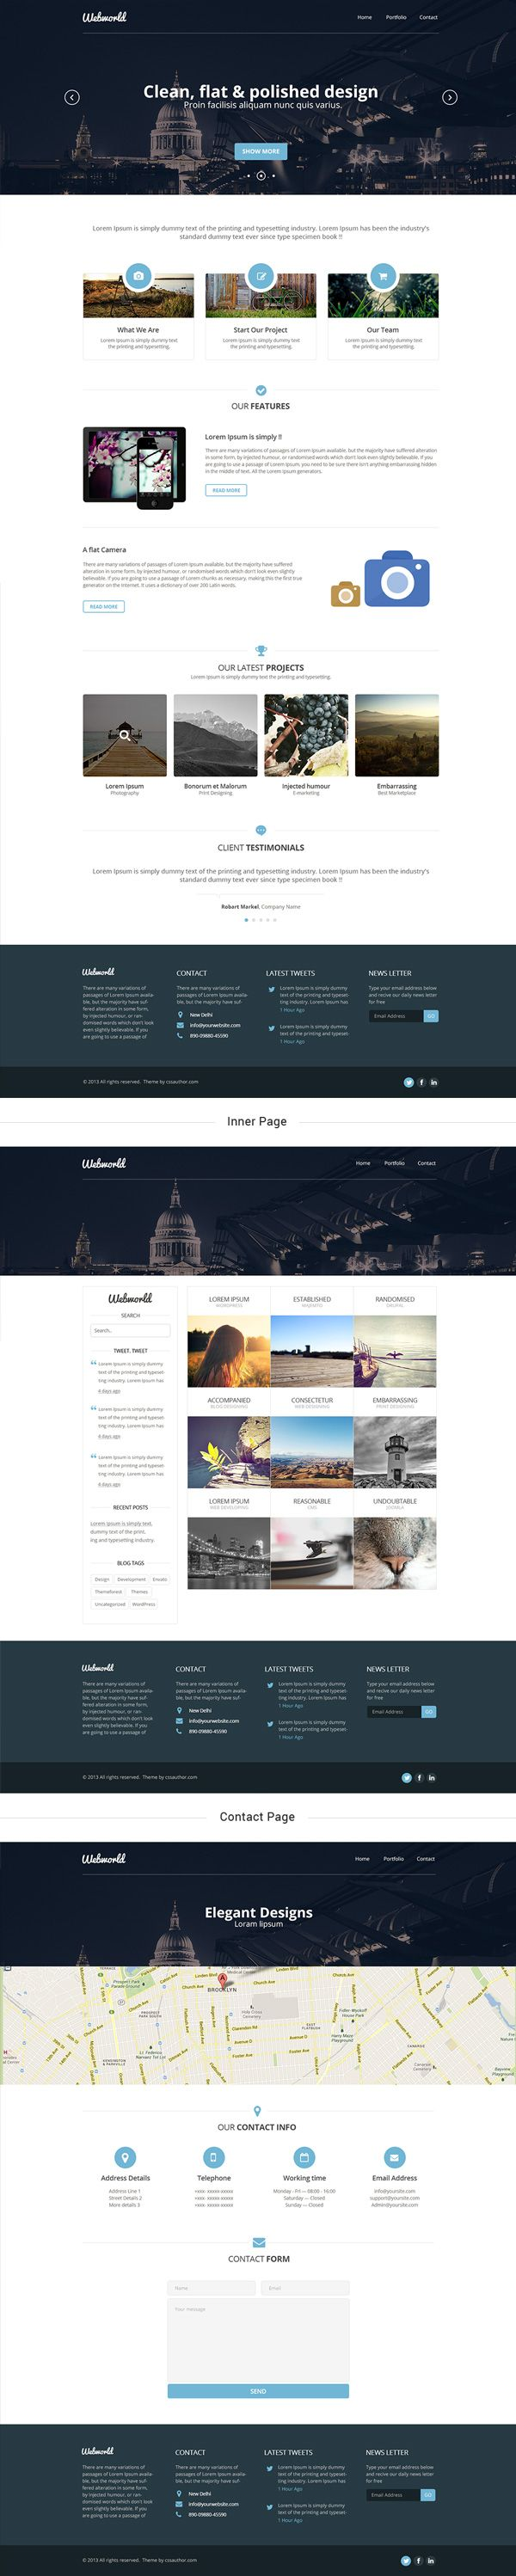 Cool Corporate Web Design Template PSD. Today's featured freebie is a professional website PSD template from CSS Author. This template is designed based on standard 1024 px width and can be used for any kind of web design projects. #featured #freepsd #freebie #freemium #premium #resource #template Check more at http://psdfinder.com/free-psd/corporate-web-design-template-psd